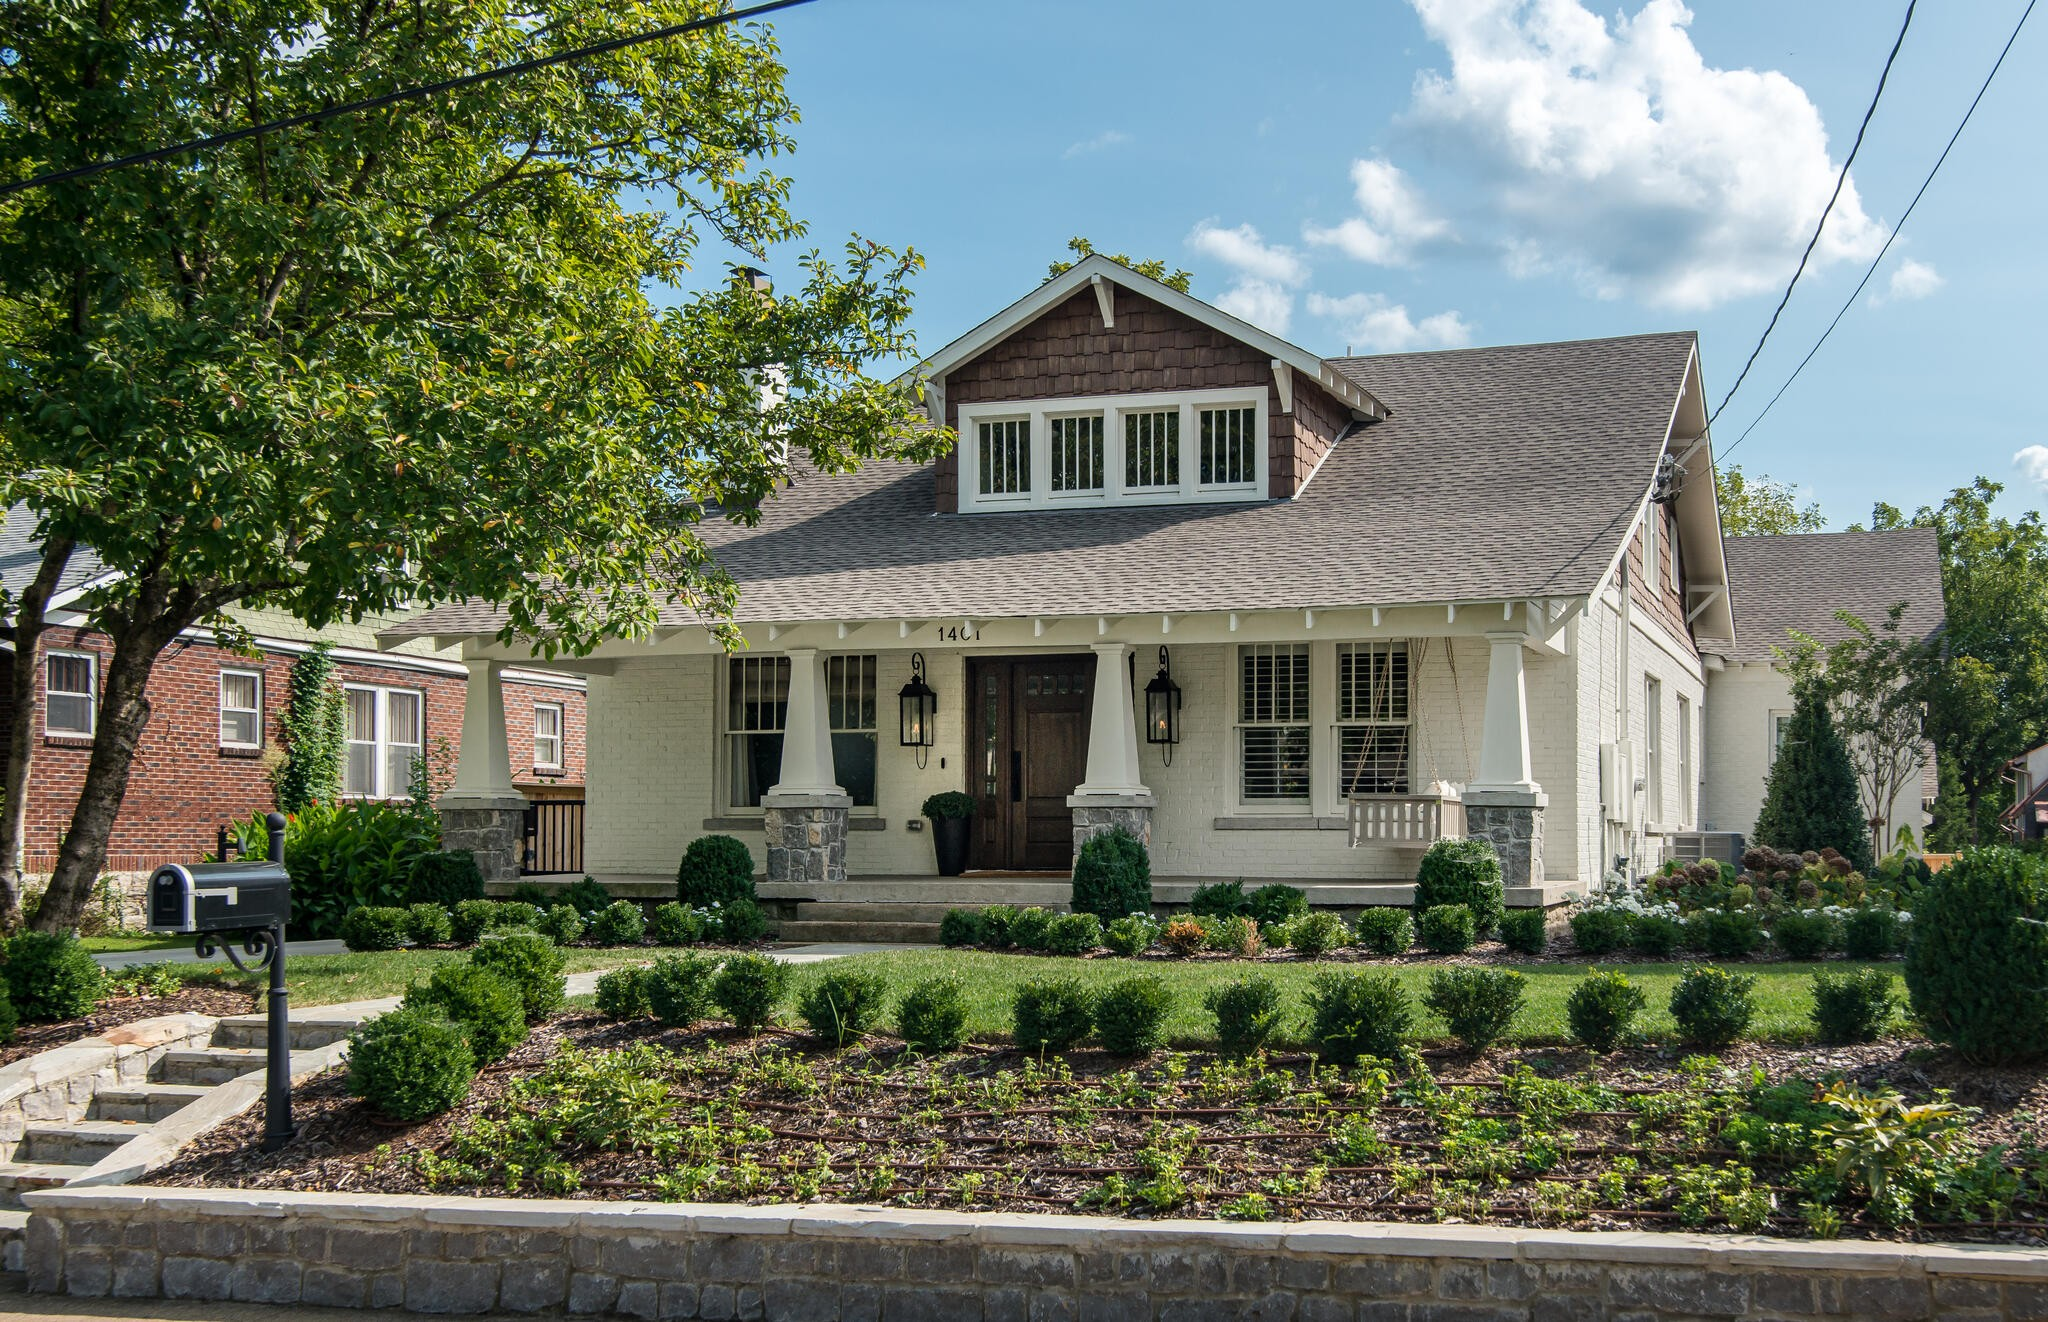 1401 Sweetbriar Ave Property Photo - Nashville, TN real estate listing